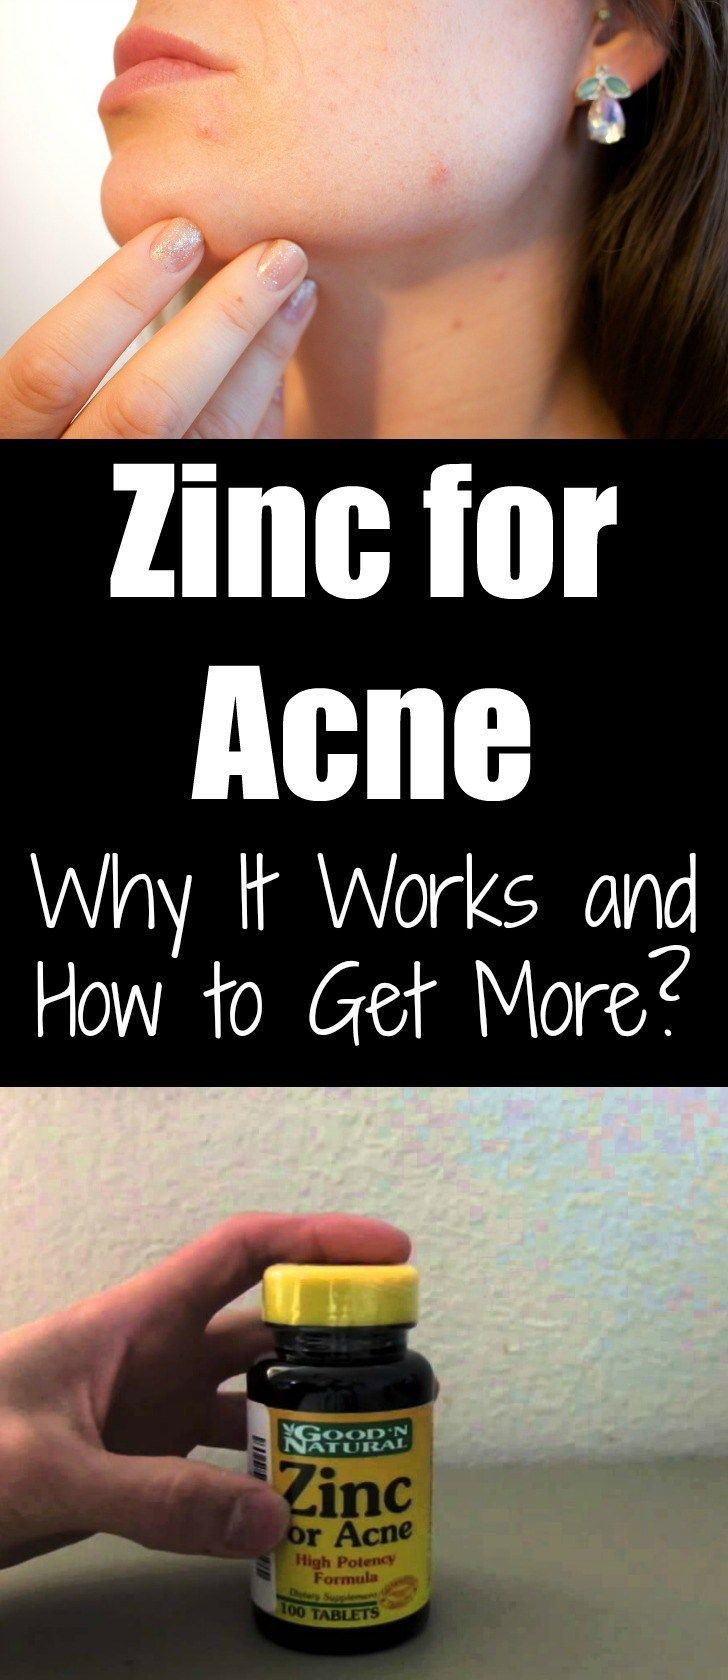 Zinc For Acne Why It Works & How To Get More!!!!? beauty